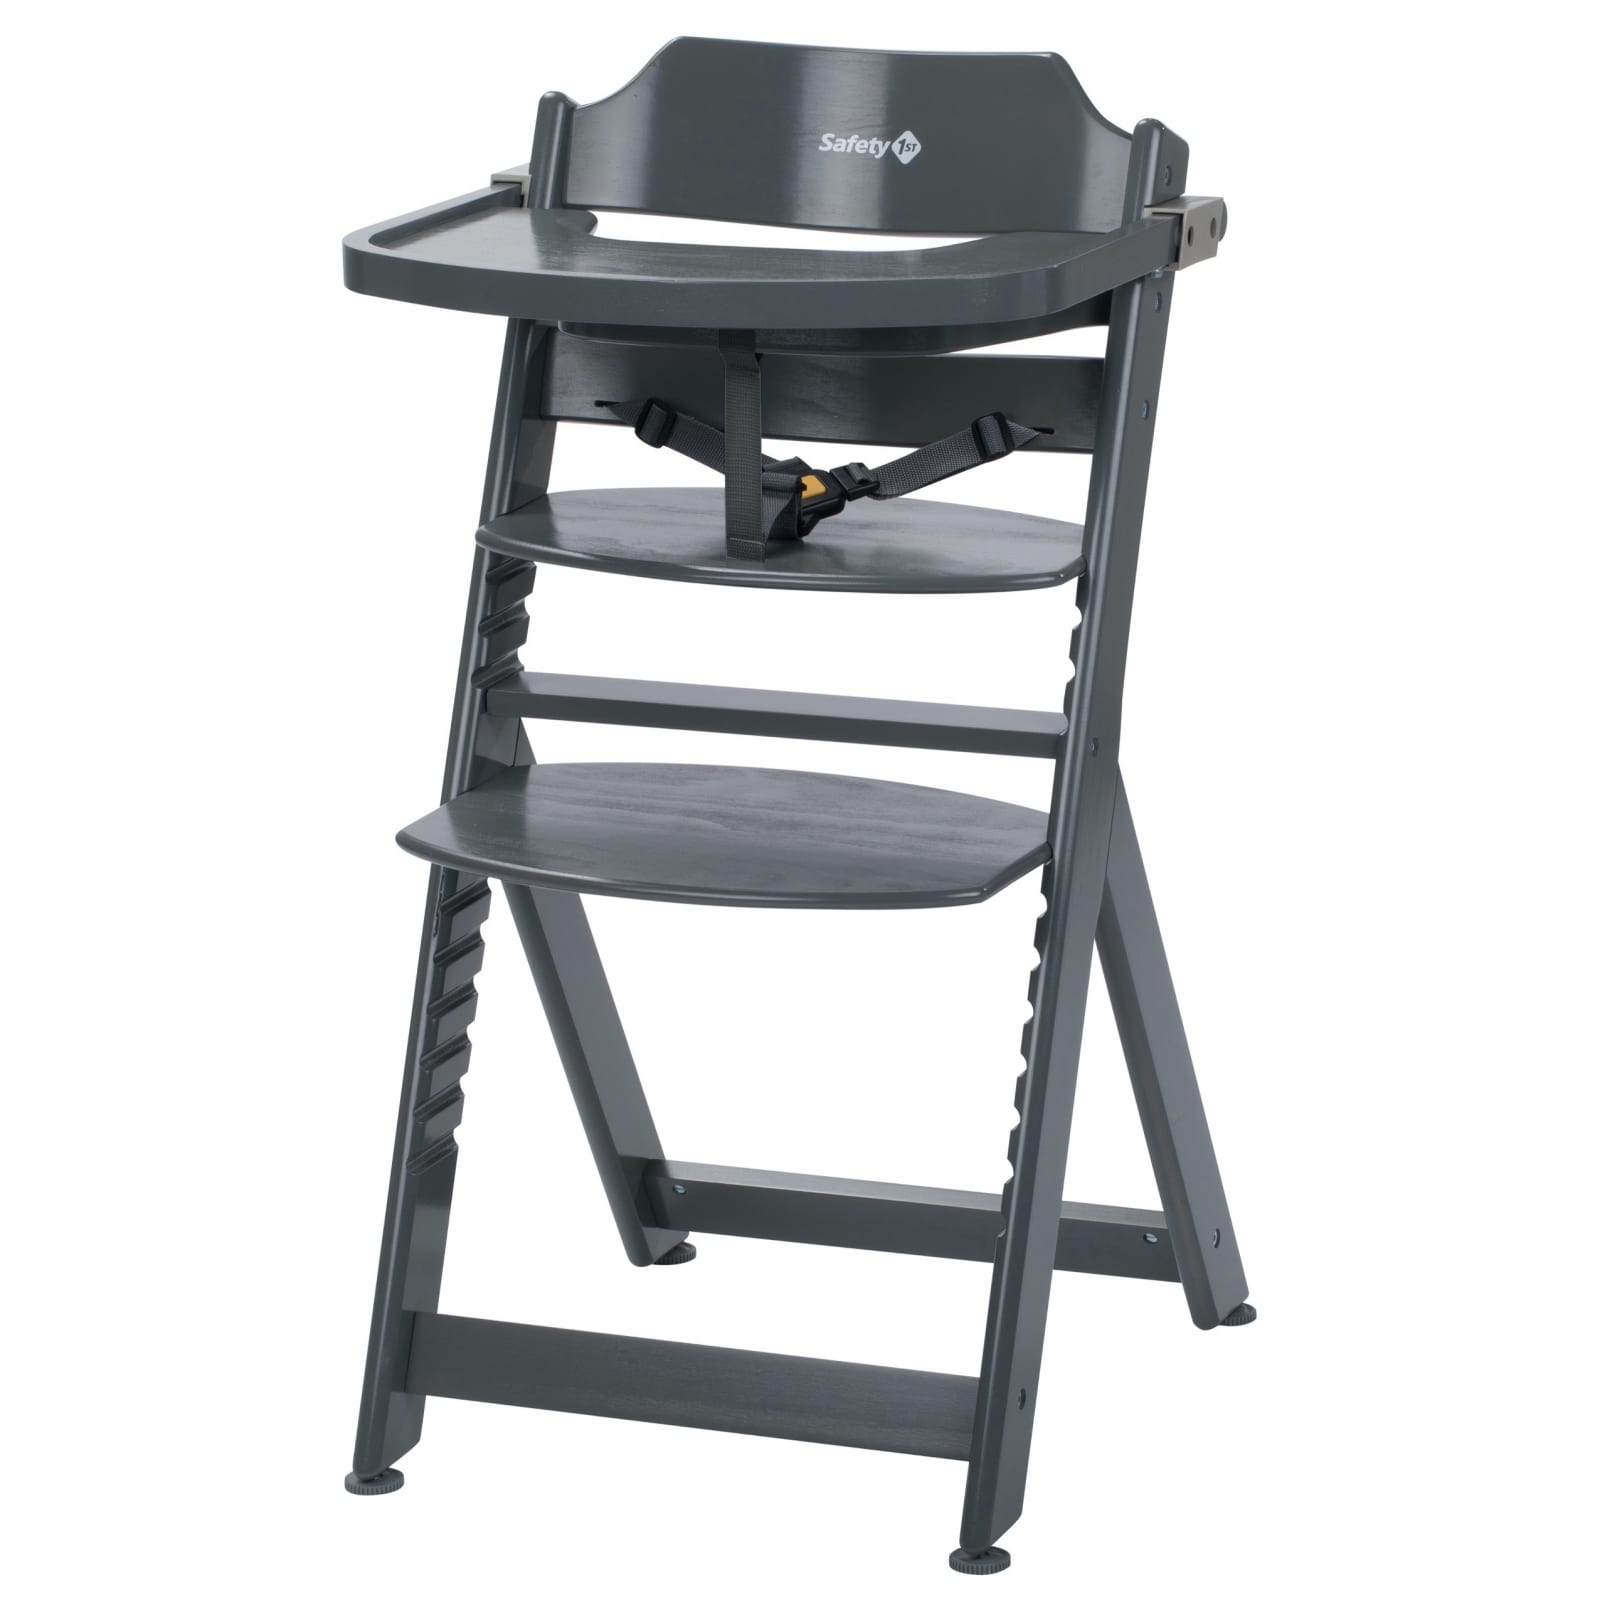 Safety 1st Timba Wooden Highchair – Warm Grey product image